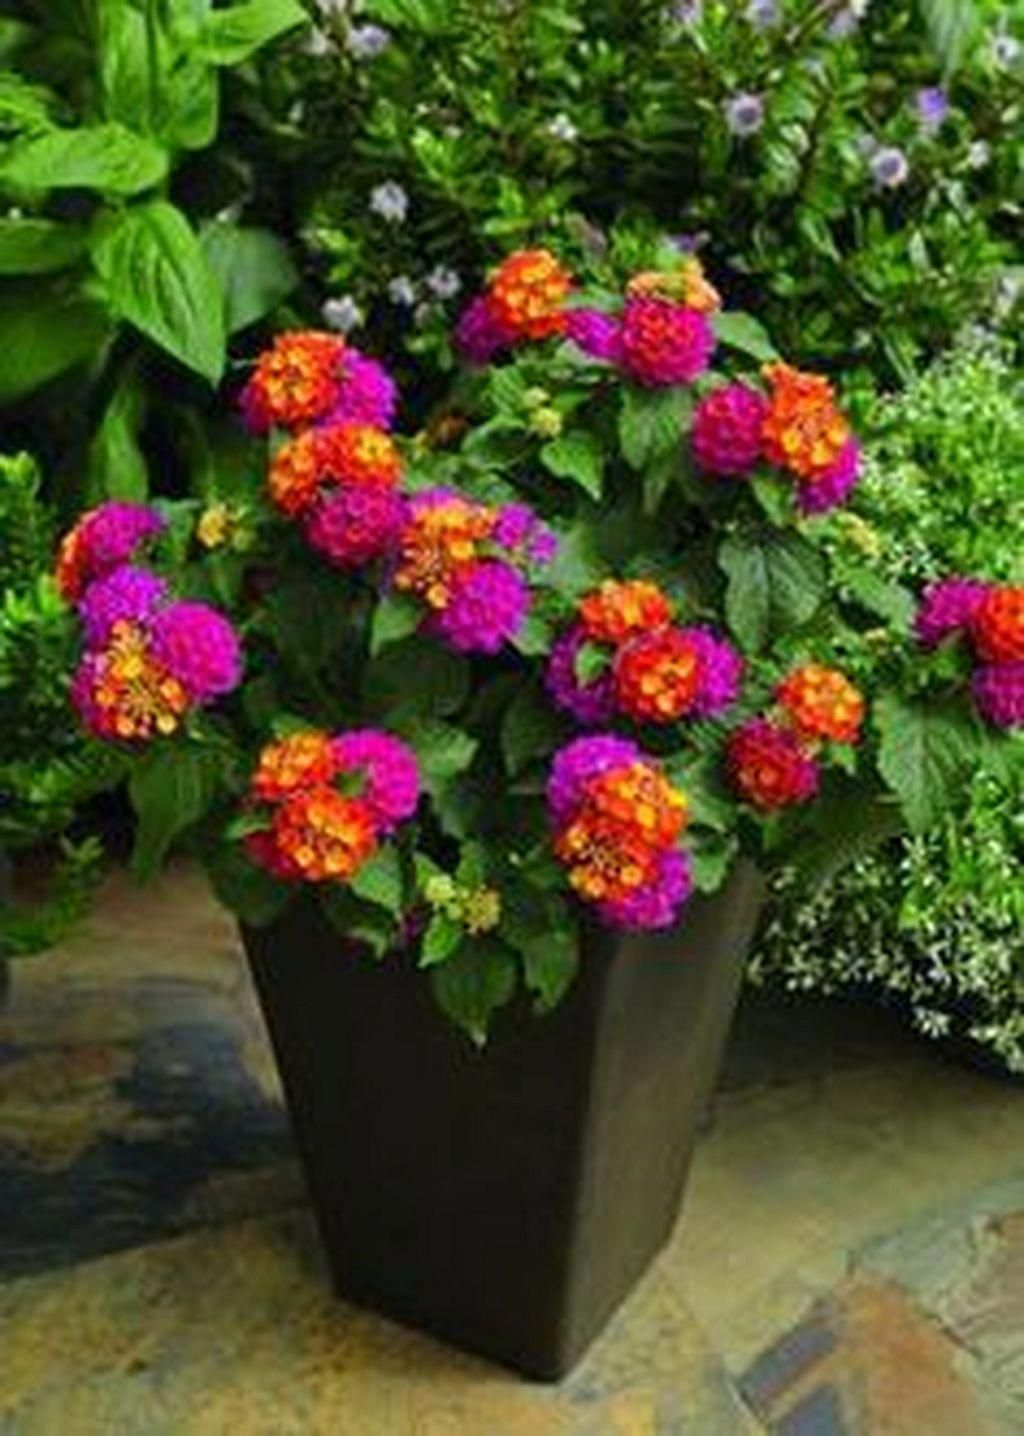 Simple Container Garden Flowers Ideas 10 Containergardeningideas Container Gardening Flowers Lantana Plant Container Flowers